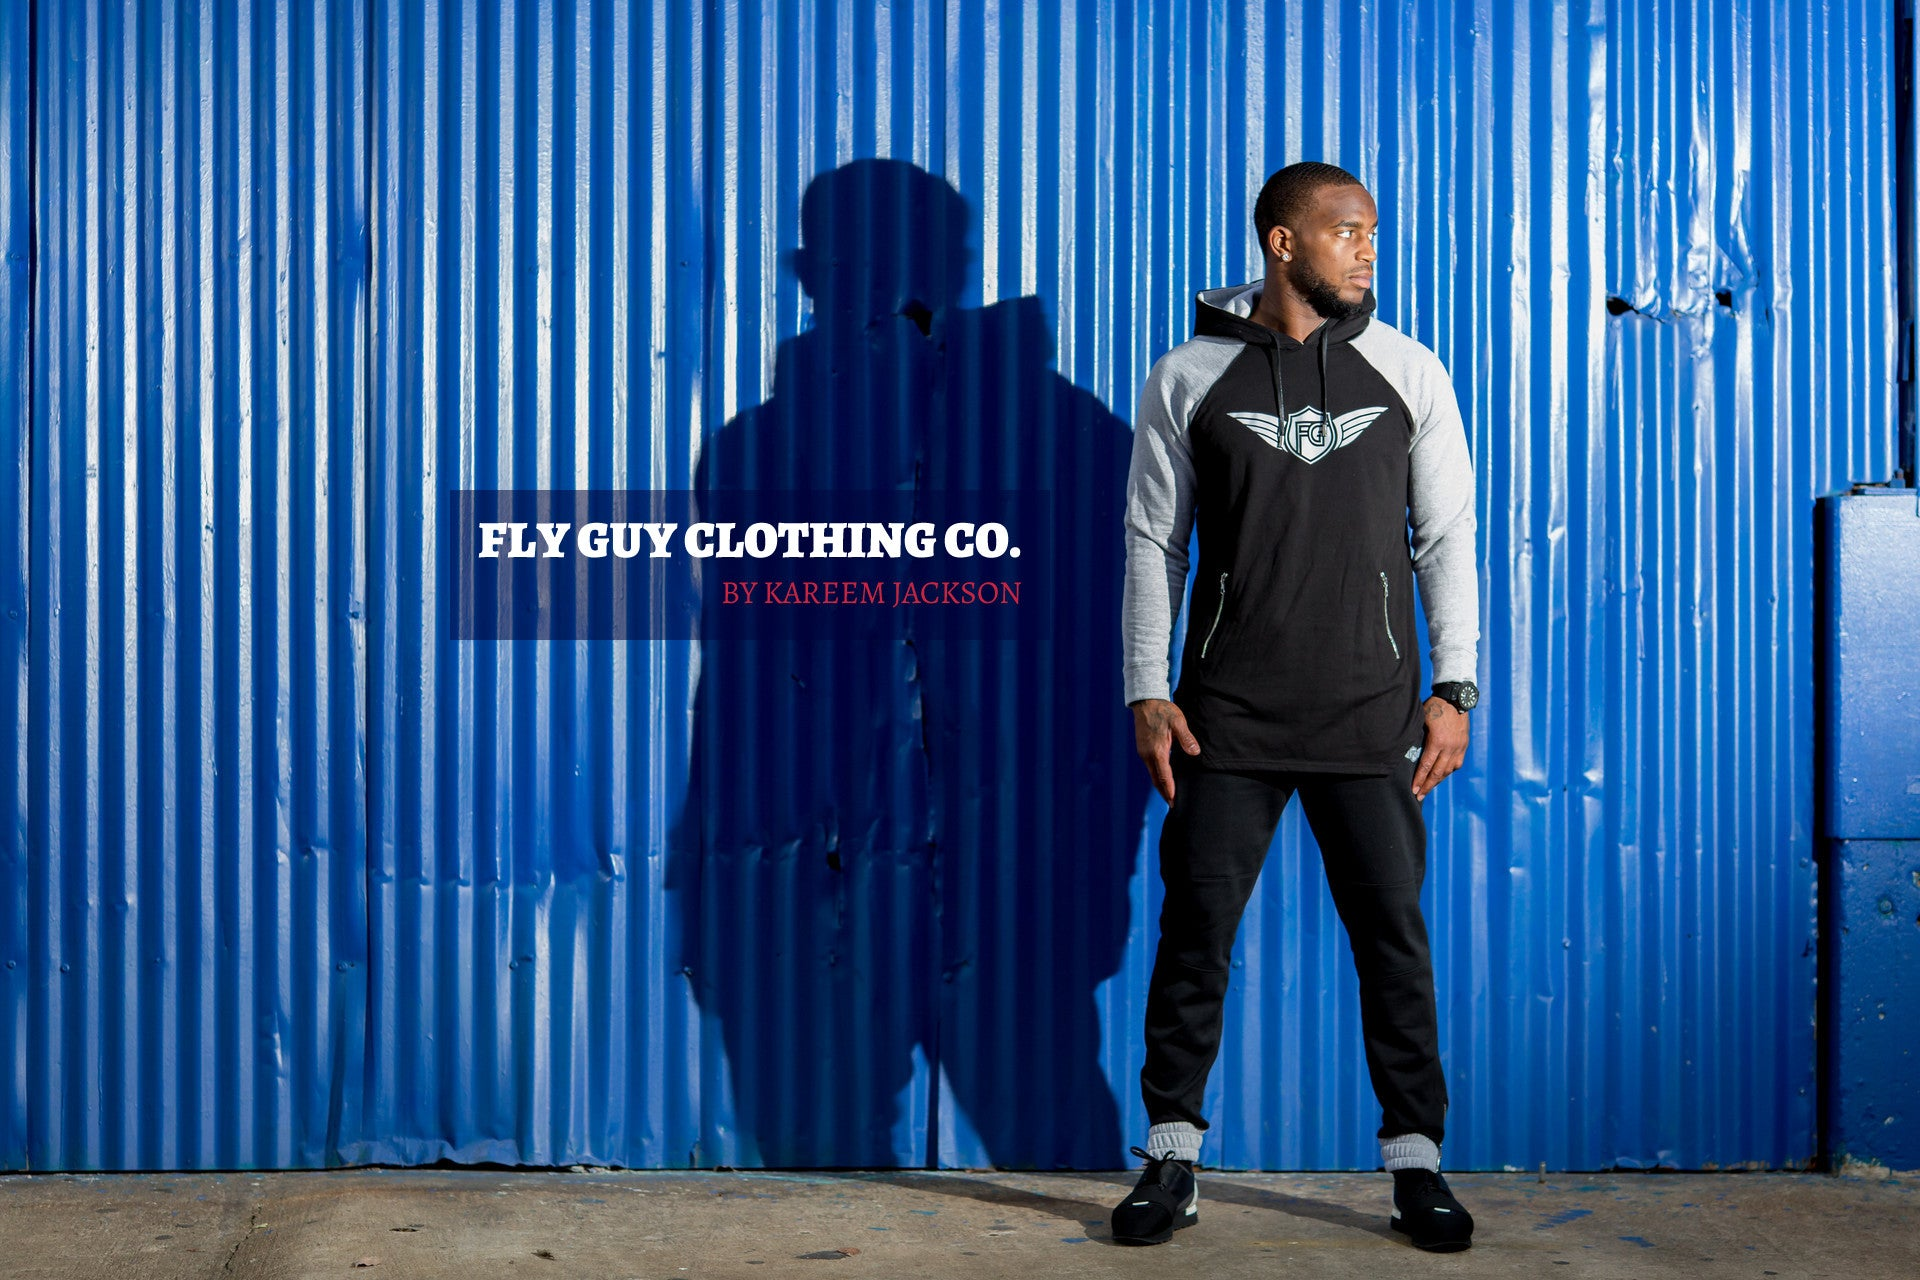 Fly Guy Clothing Co. By Kareem Jackson